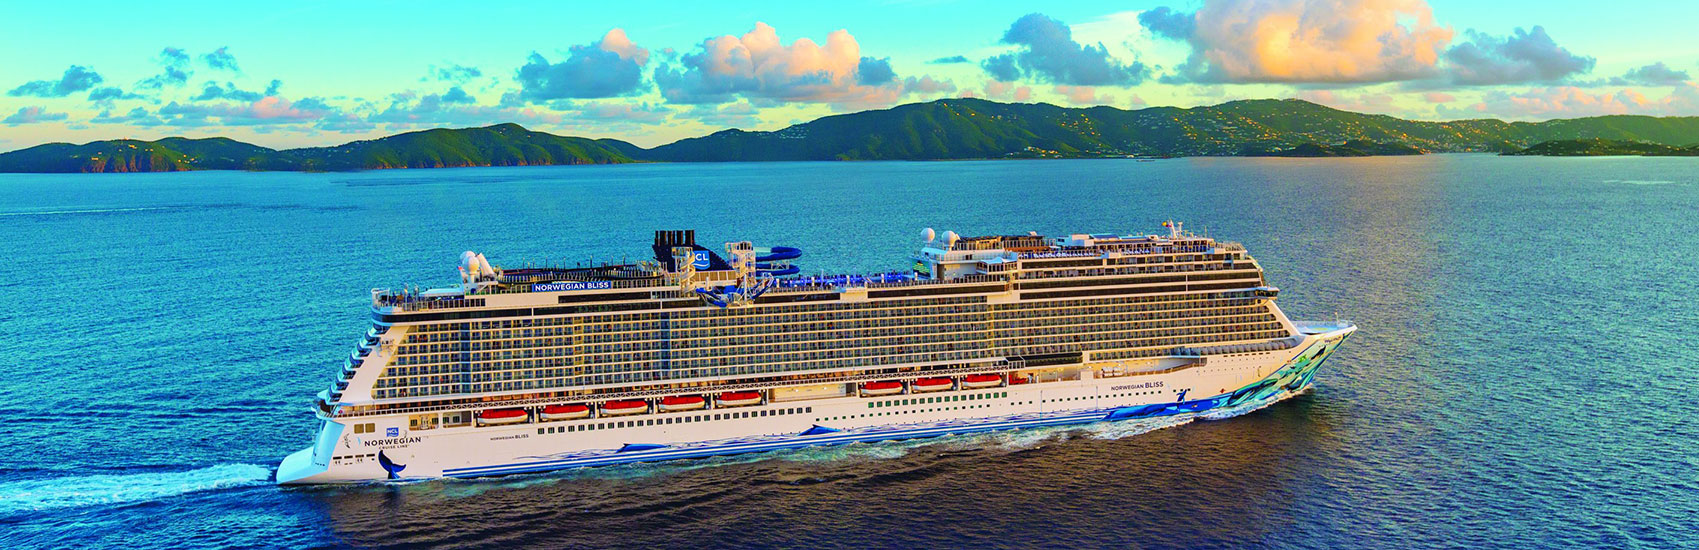 Norwegian Cruise Line's Commitment to Health and Safety 0